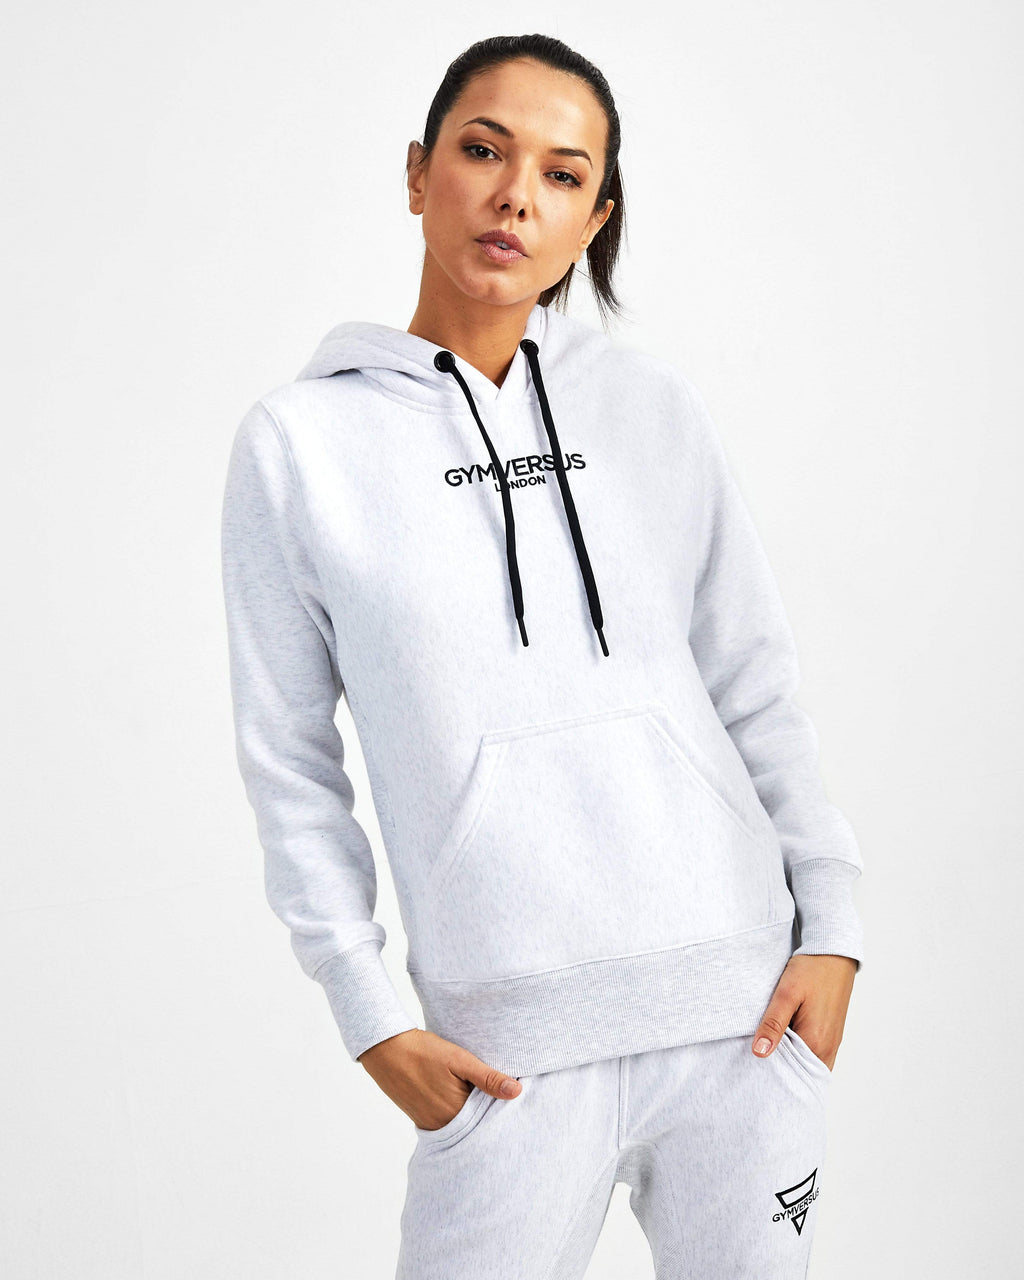 Everyday Luxe Pullover - Marl Grey - GYMVERSUS